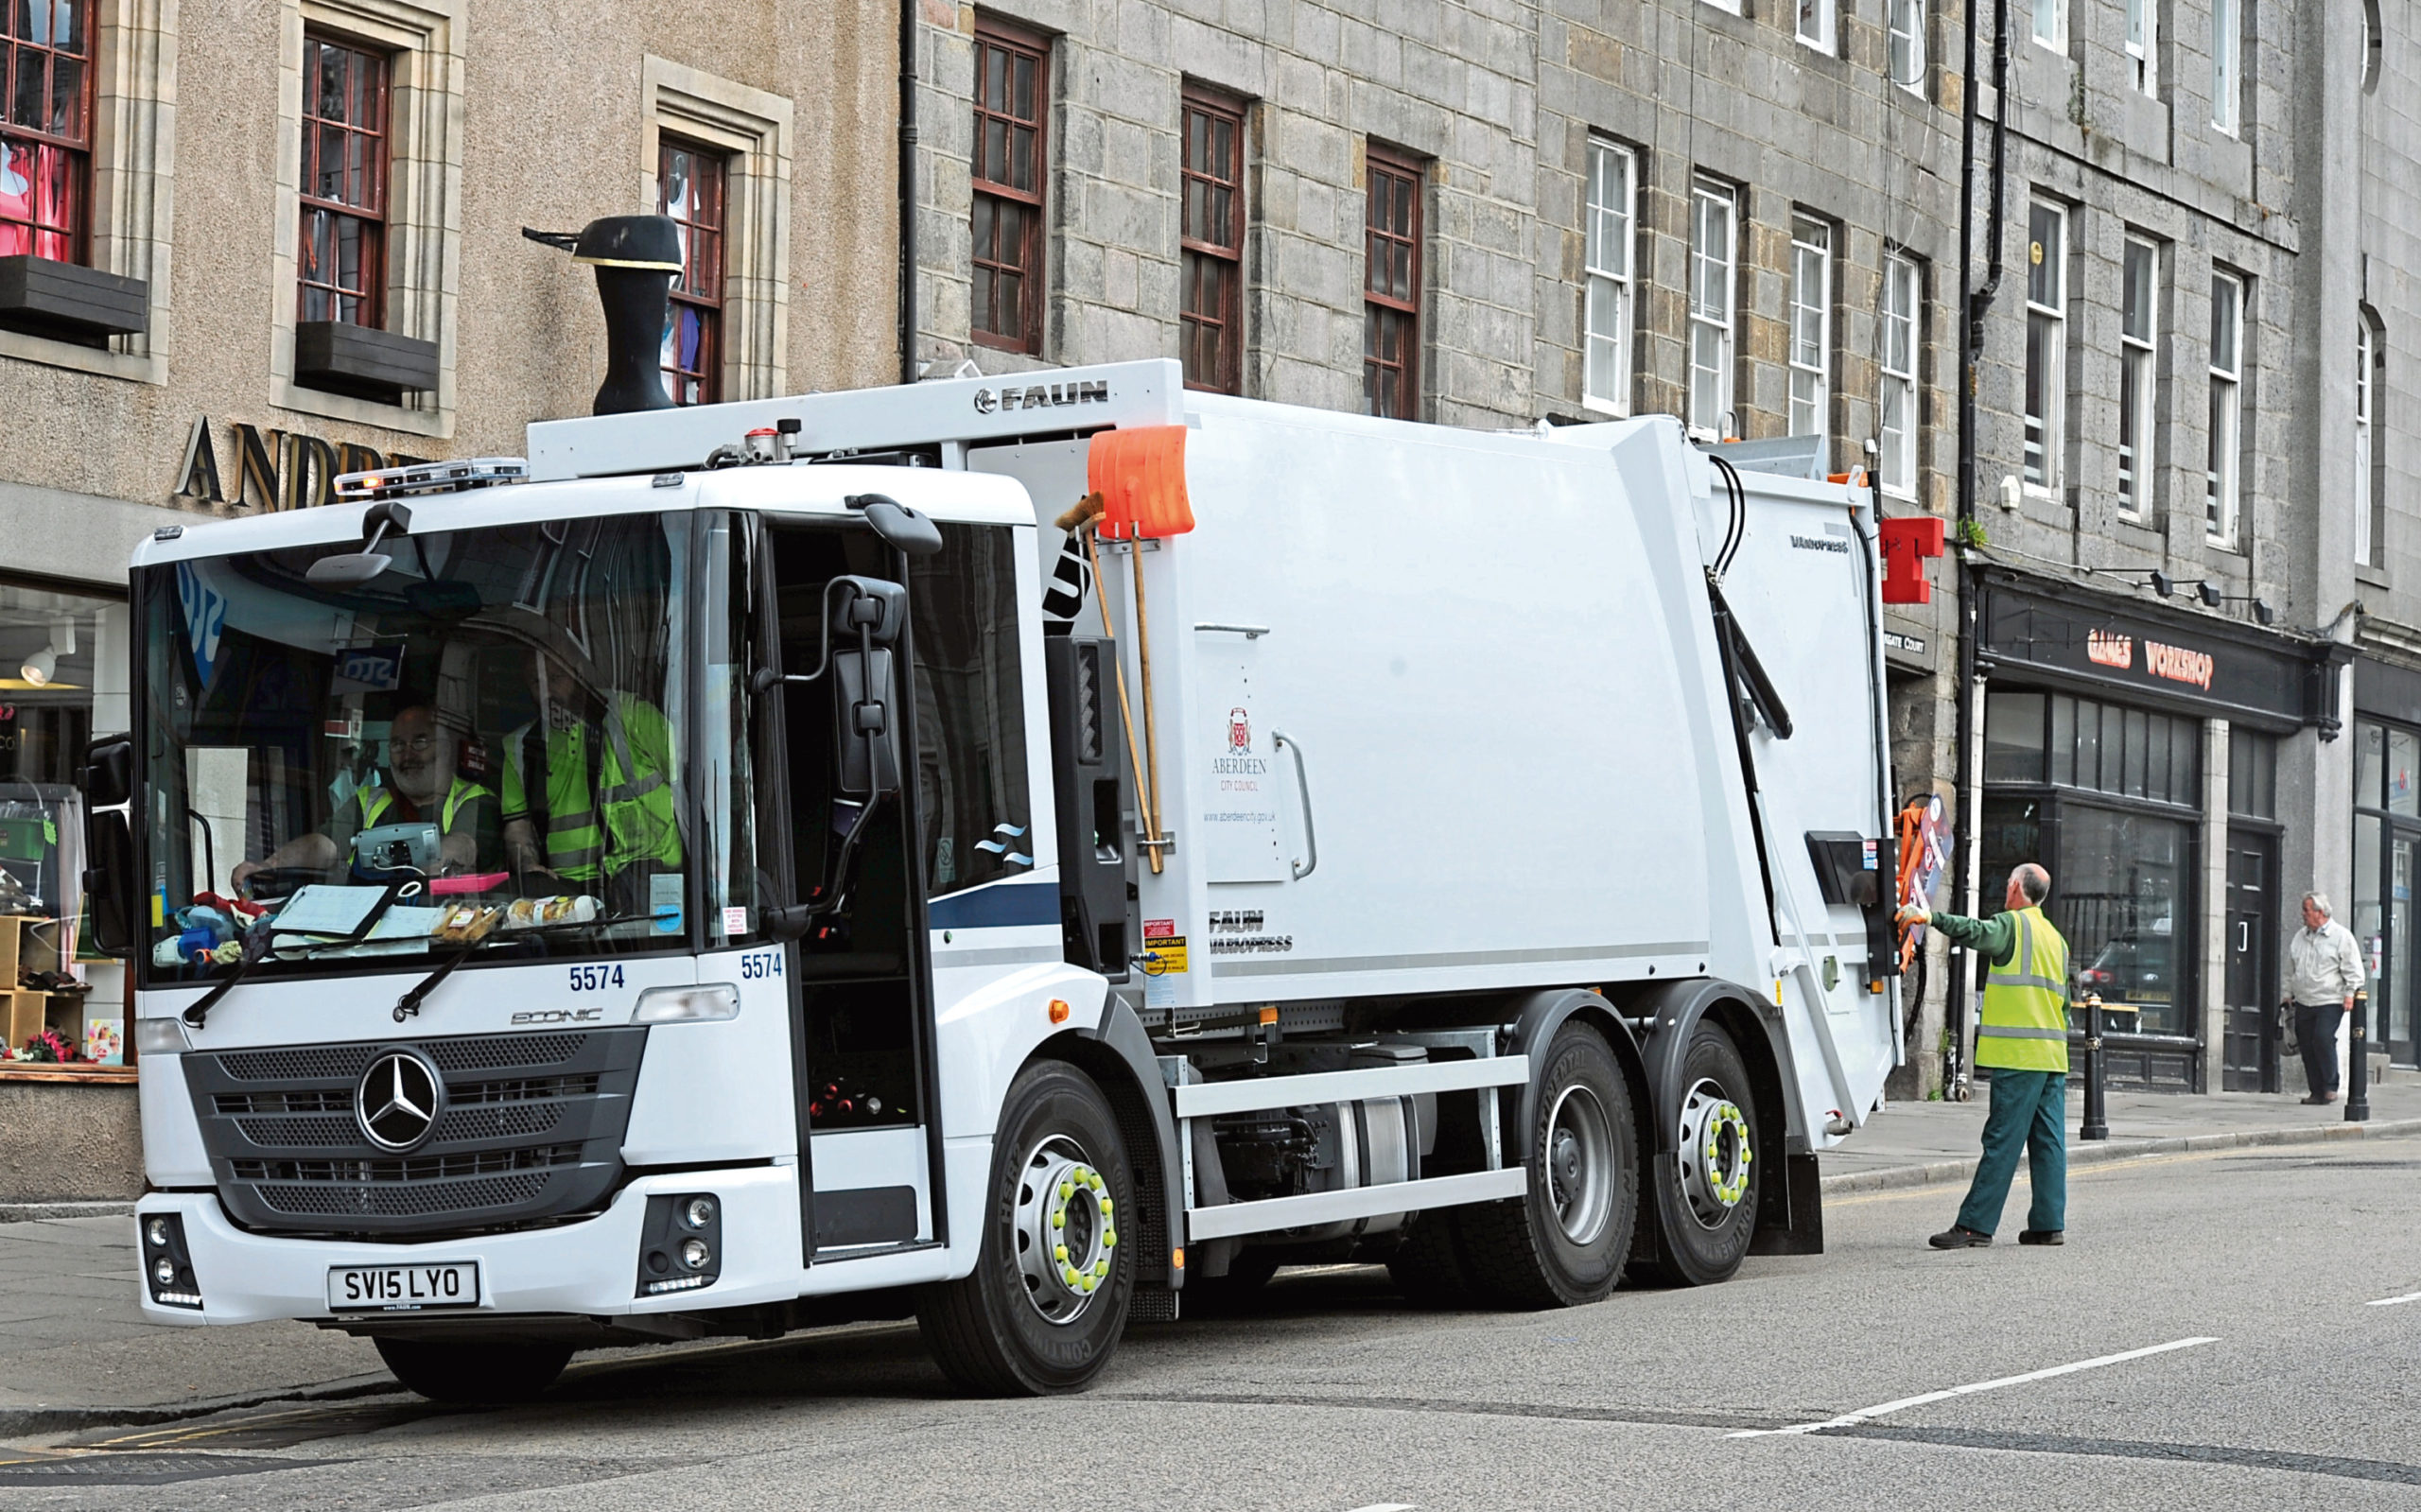 Council volunteers have helped get the recycling and garden waste collections back up and running